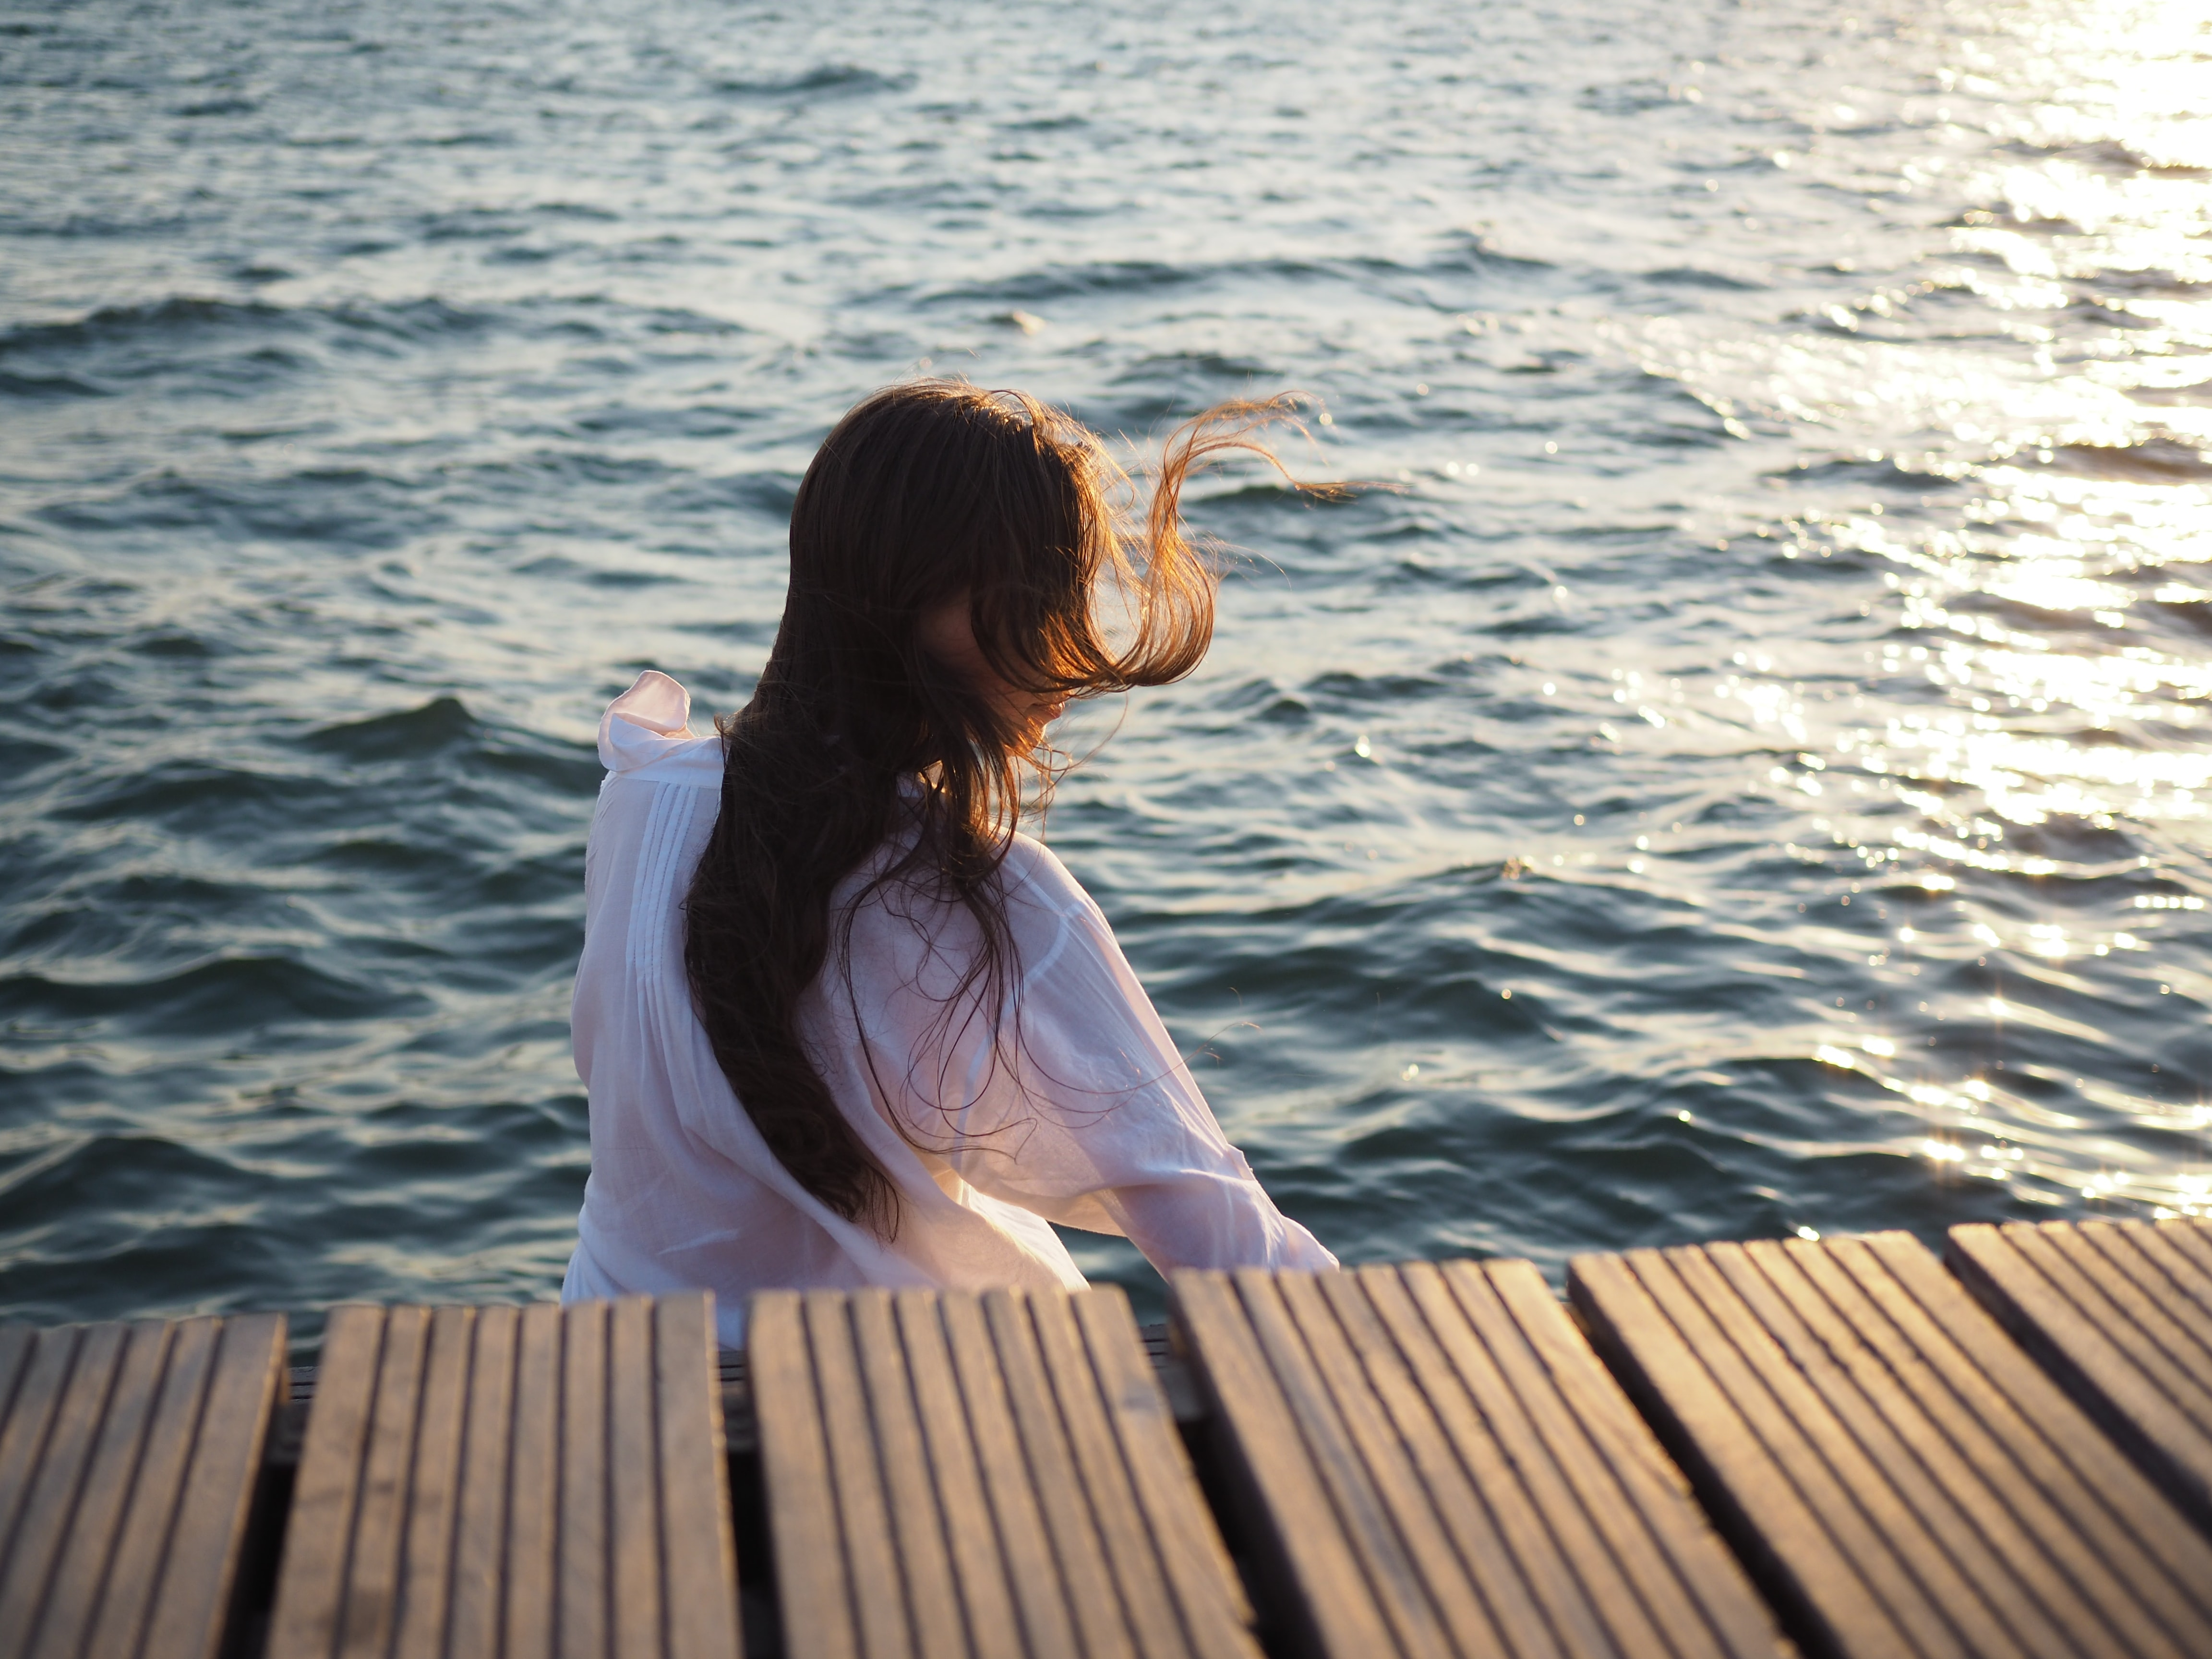 woman wearing white long-sleeved top near body of water